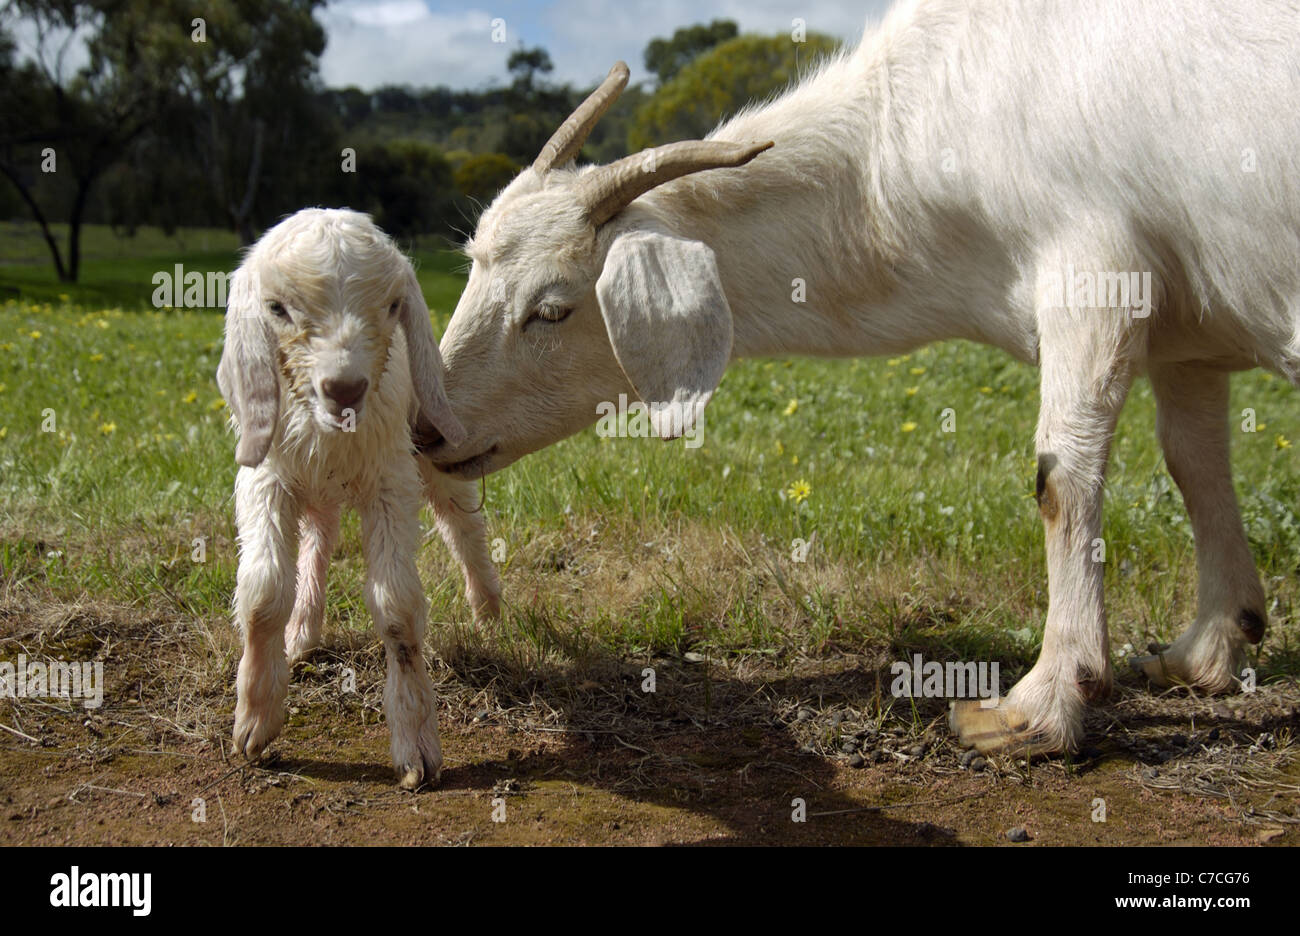 White domestic goat with a newborn kid in a meadow. - Stock Image